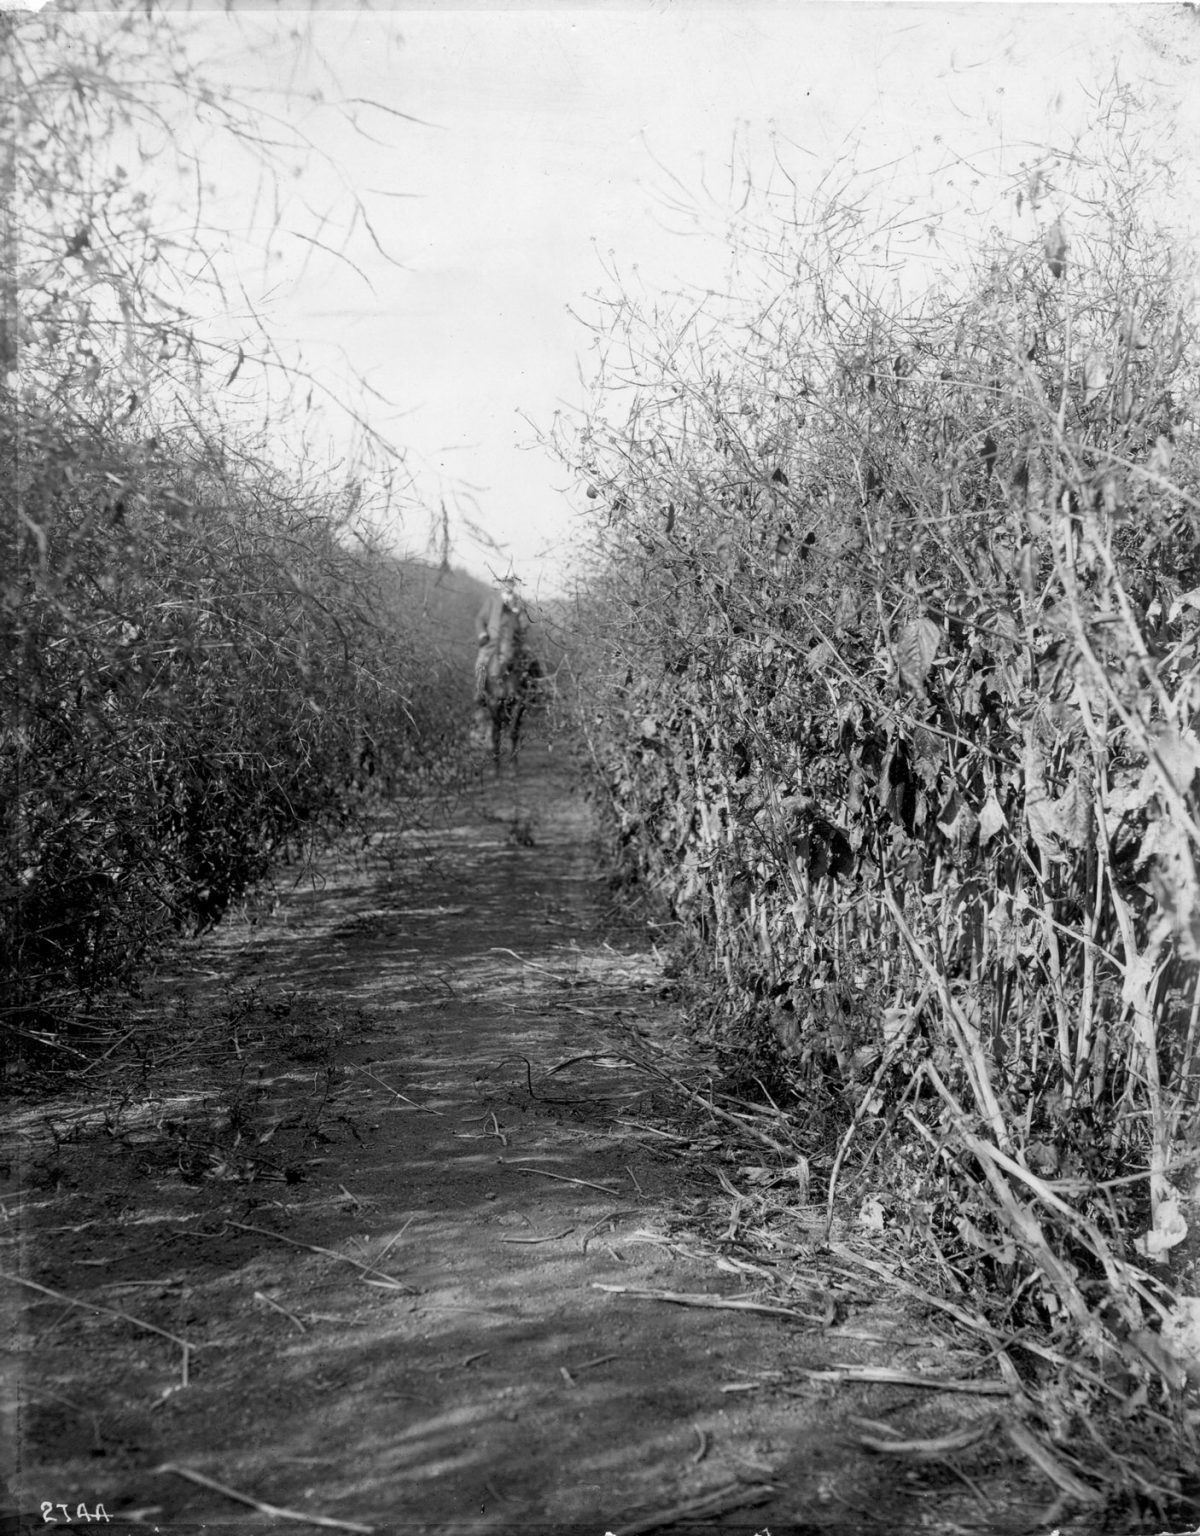 History of the USC campus: Mustard fields (Photo/Courtesy of USC Libraries)